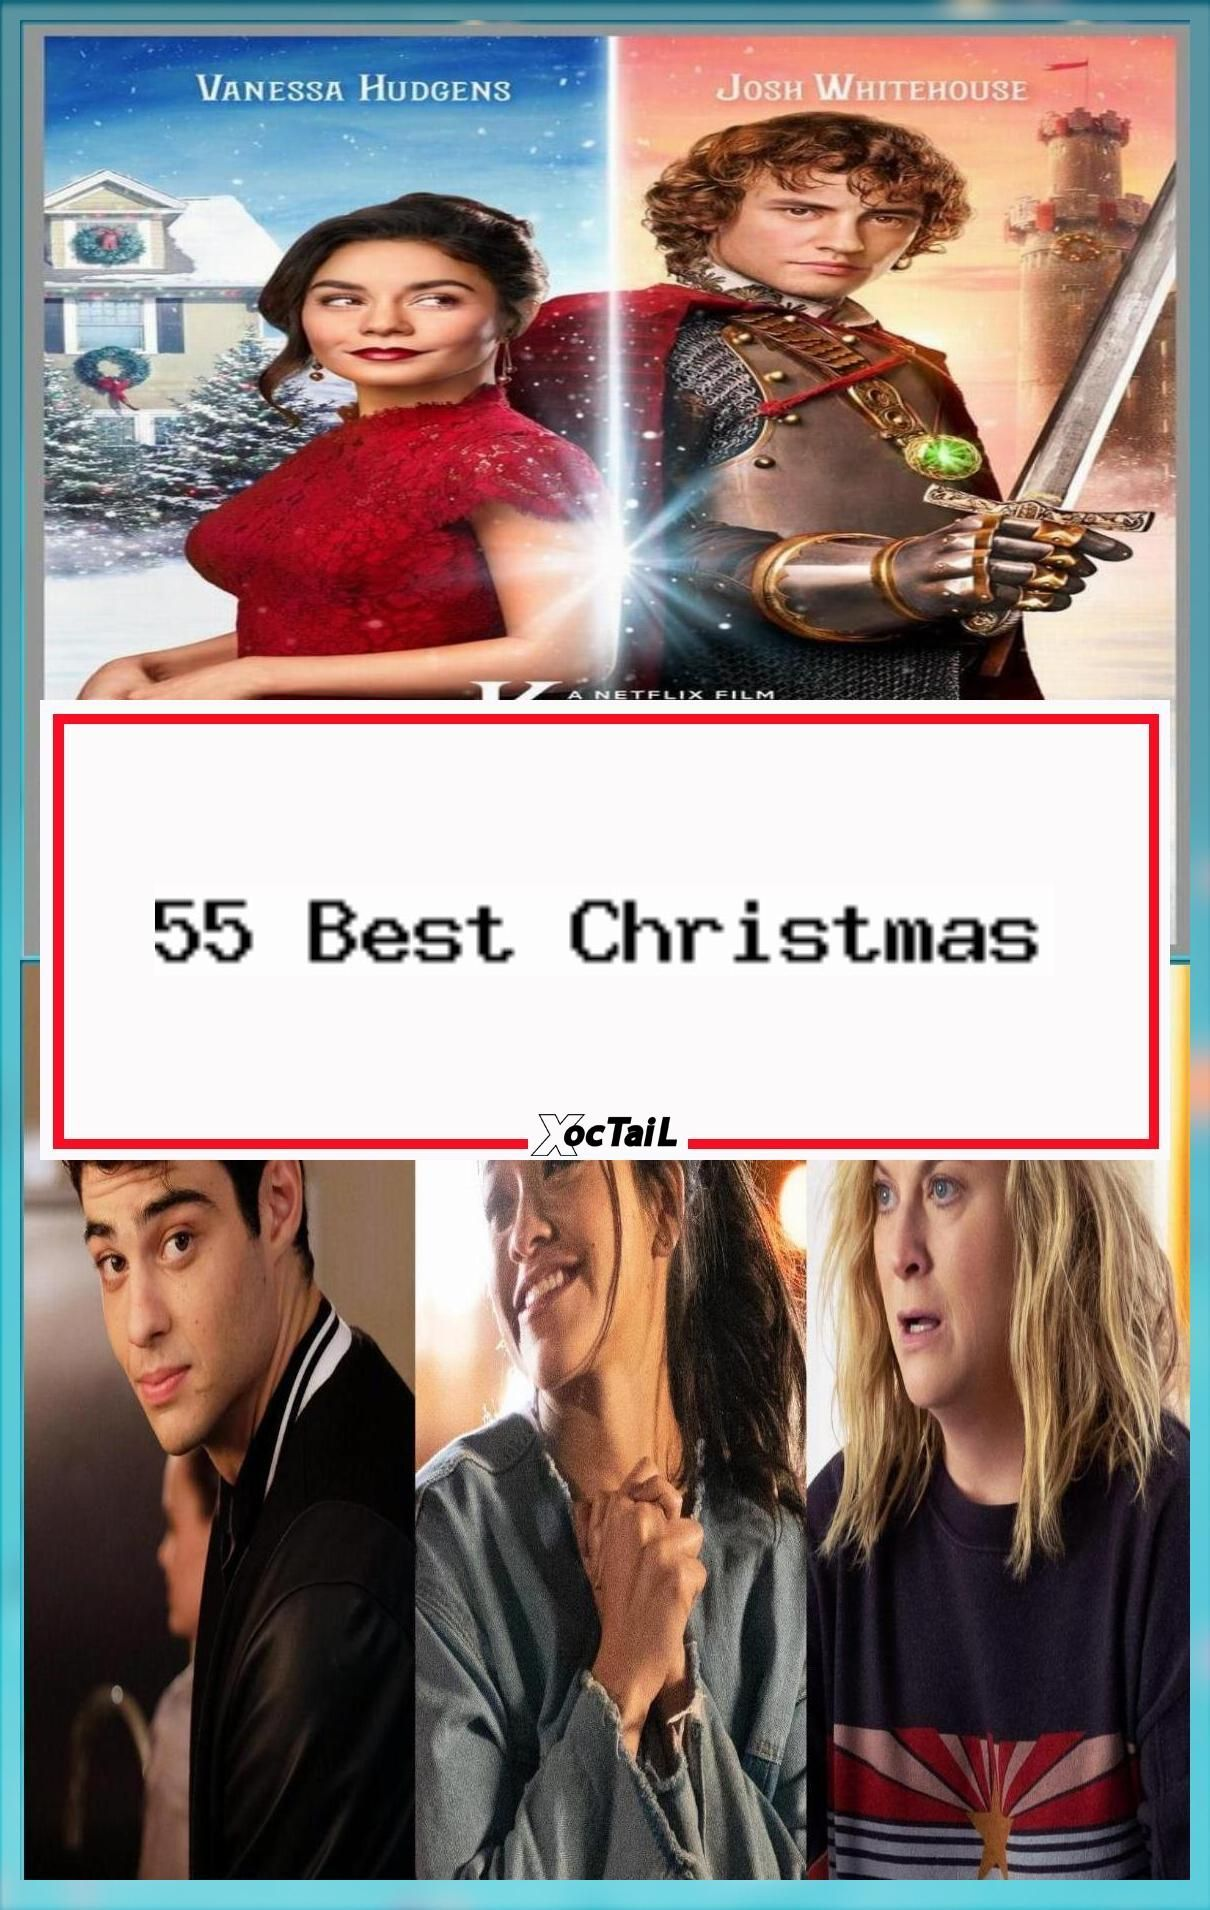 55 Best Christmas Movies on Netflix Best Holiday Movies